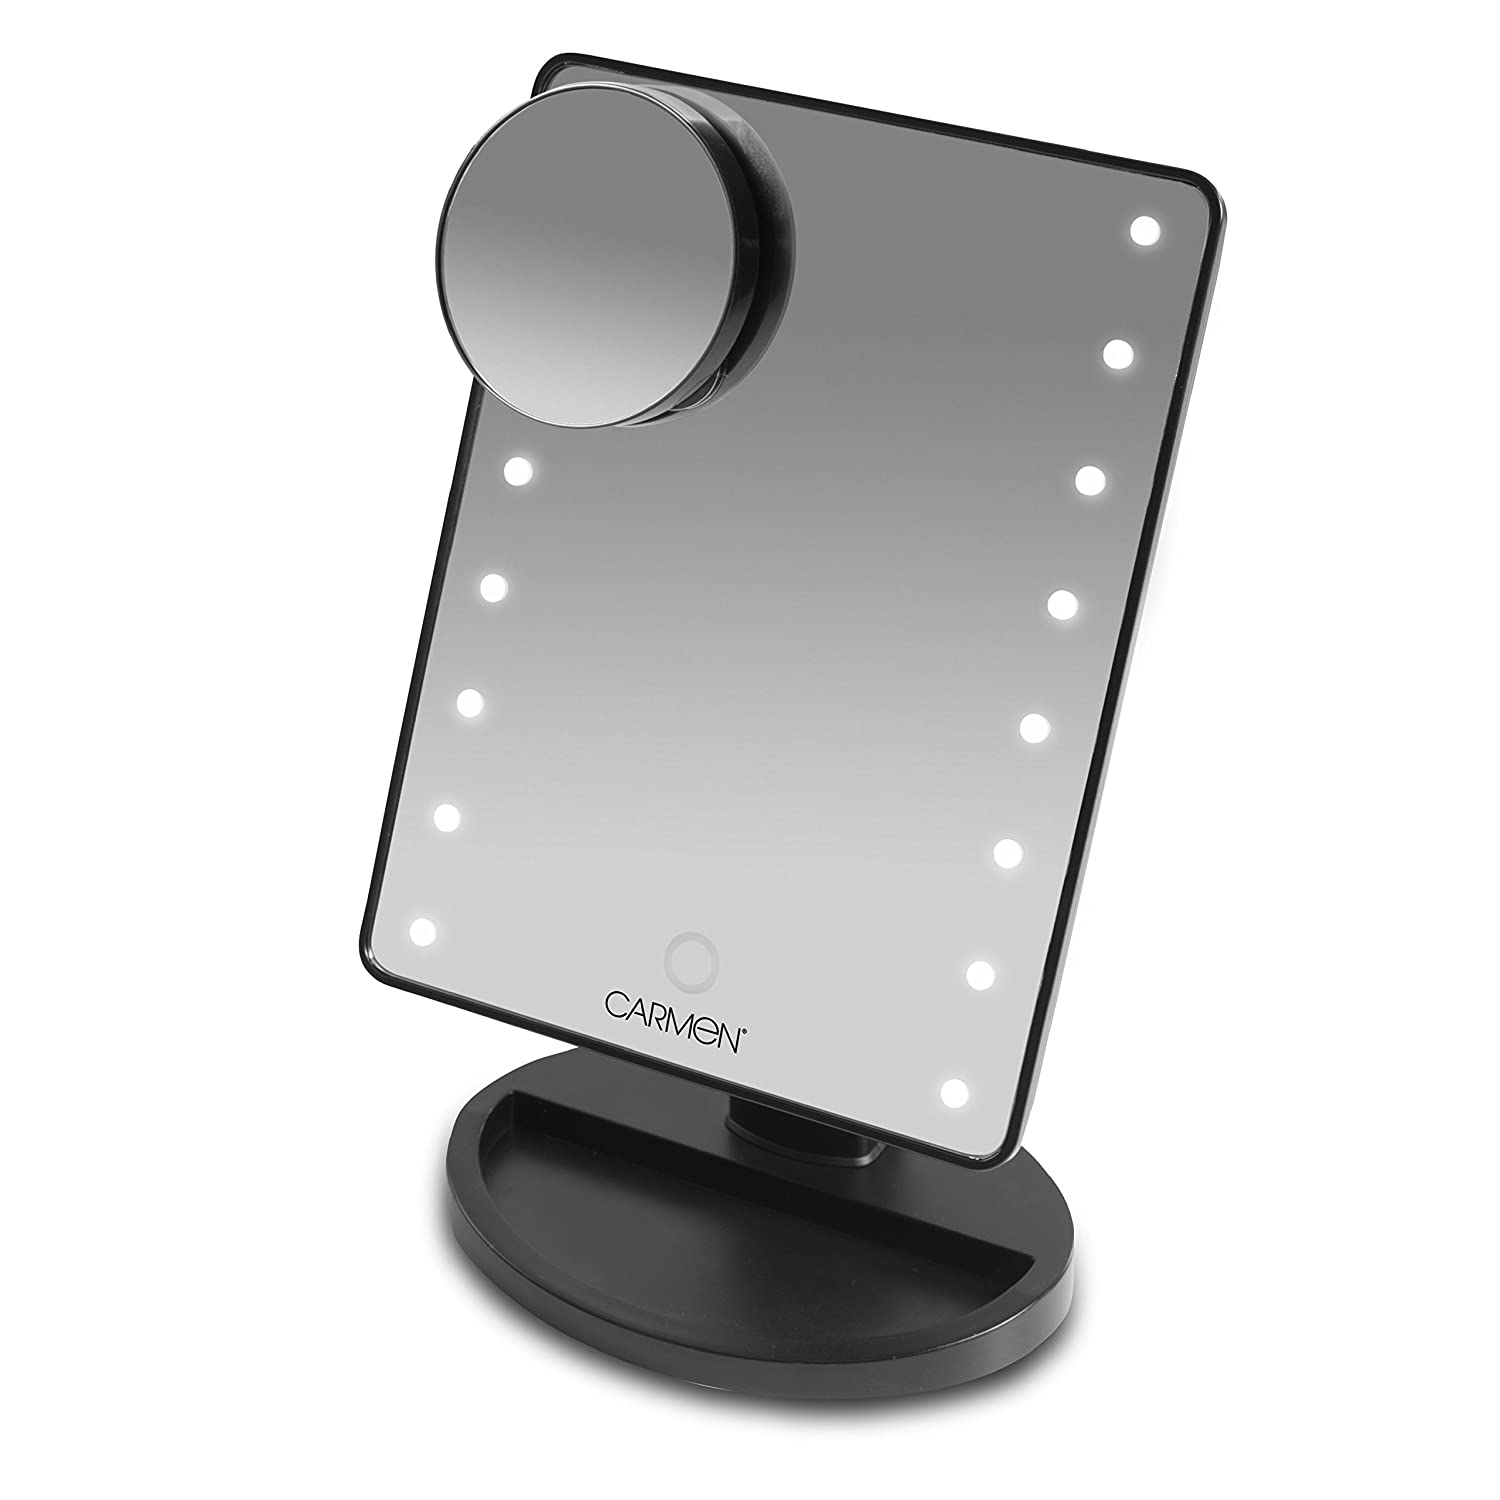 Carmen C85020 LED Illuminated Vanity Mirror with Smart Touch Screen - Black RKW